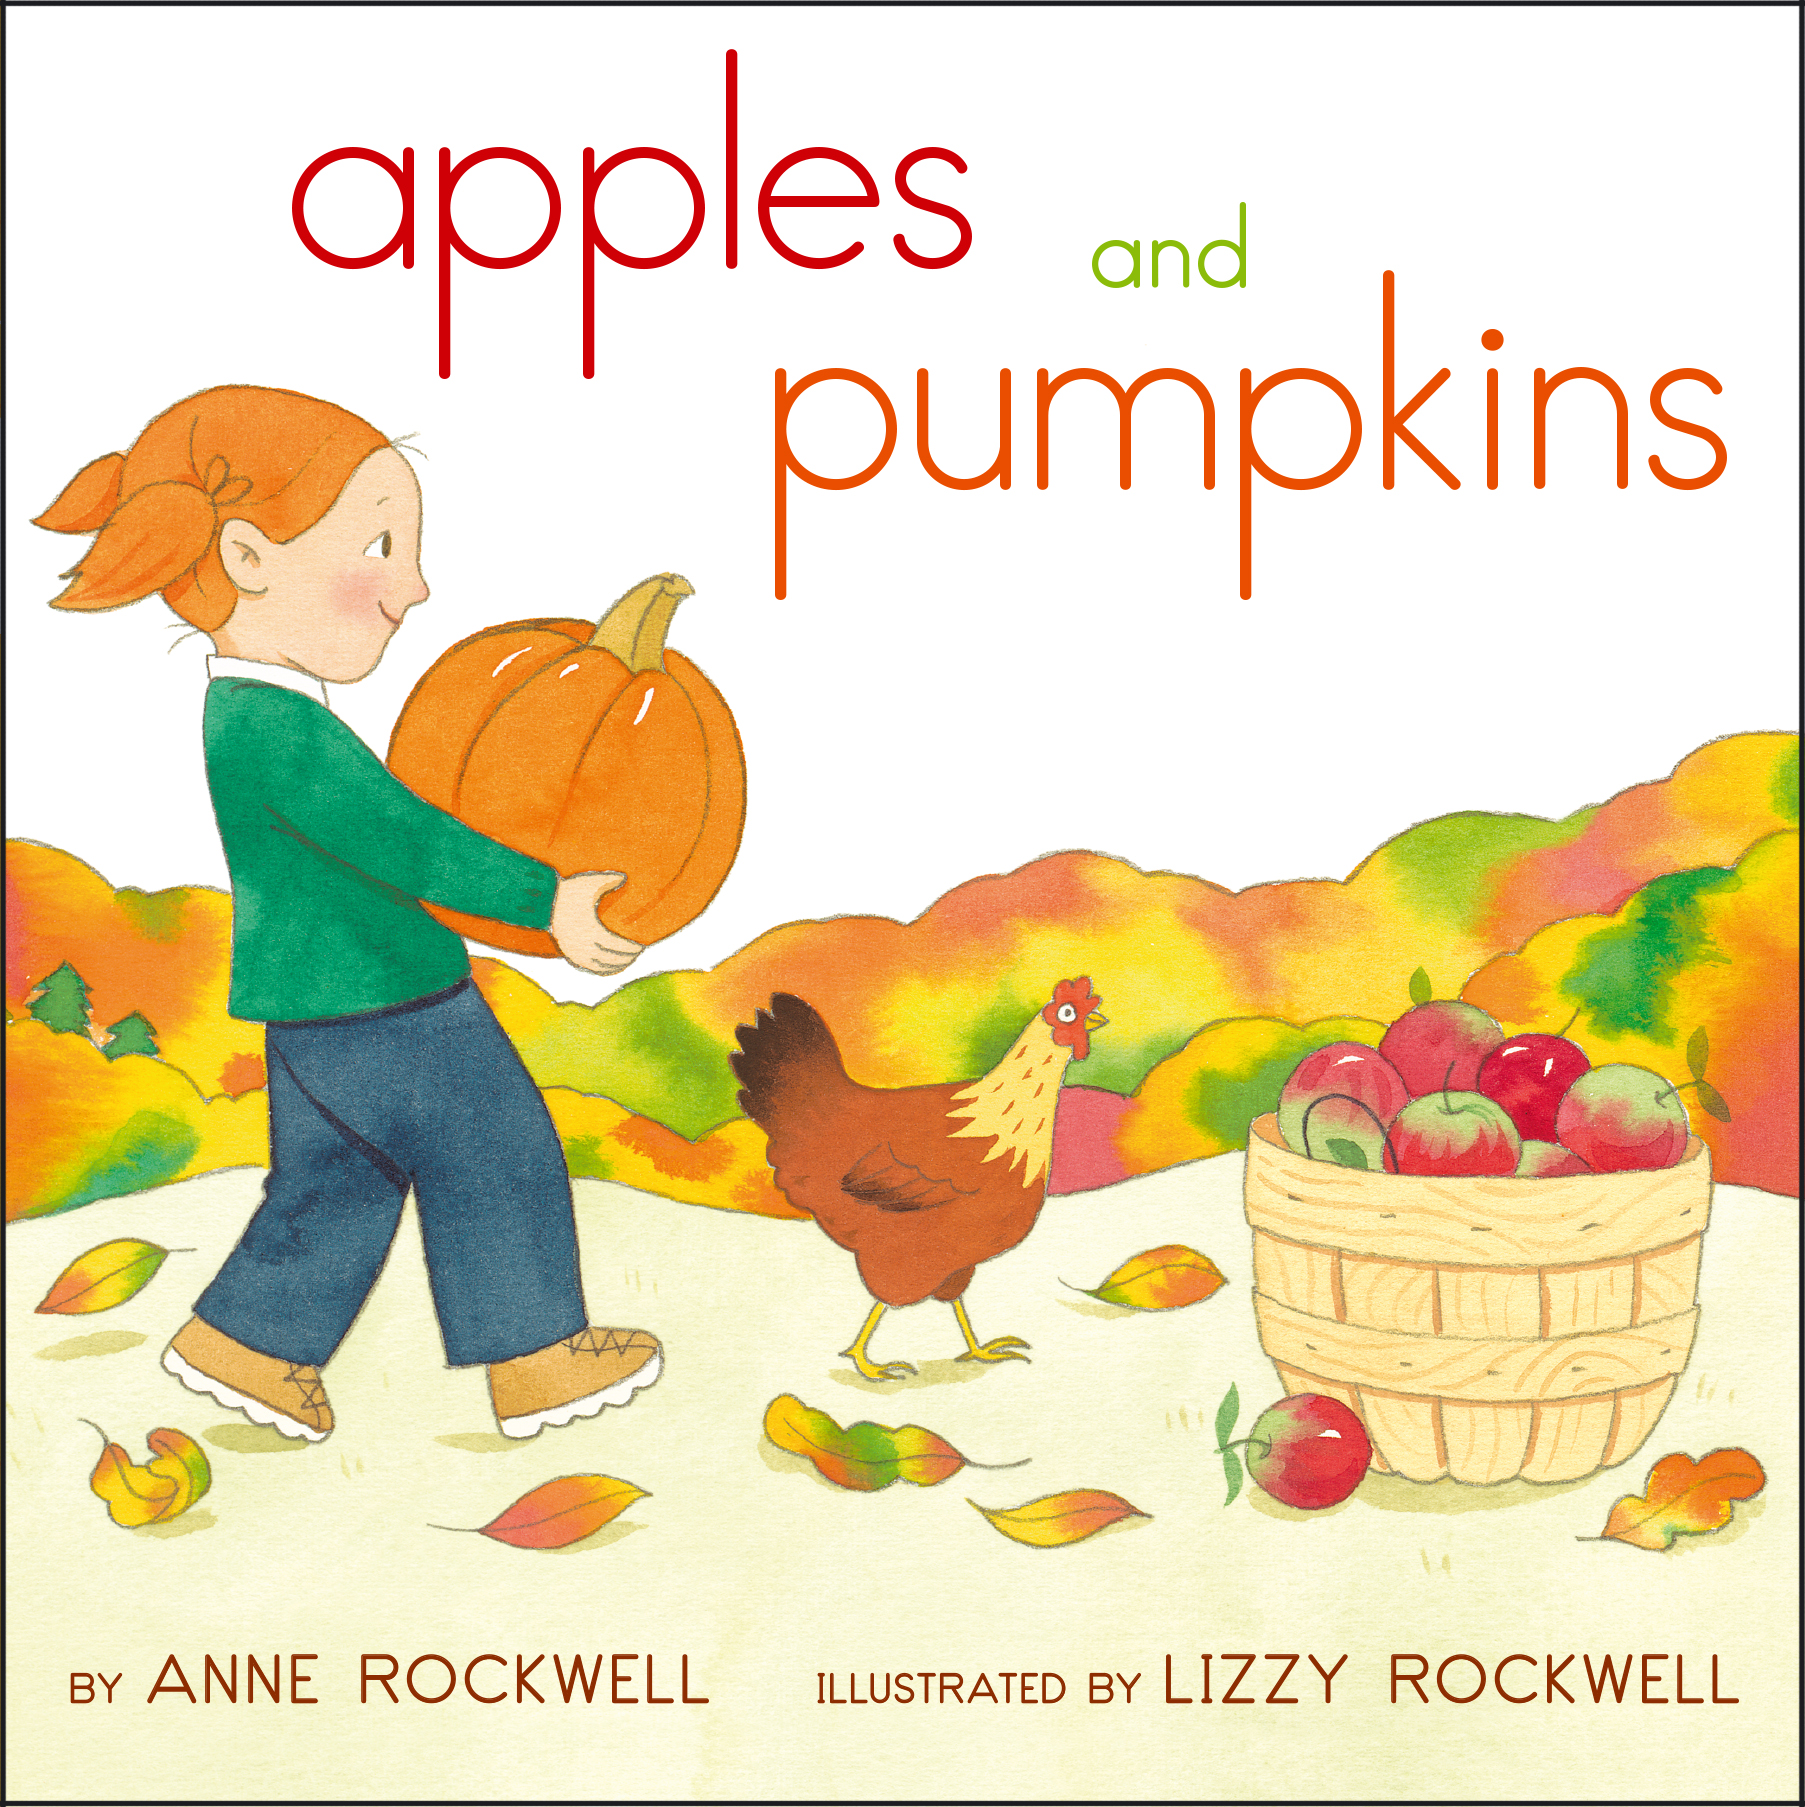 Apples and pumpkins book by anne rockwell lizzy rockwell apples and pumpkins 9781442499775 hr fandeluxe Choice Image